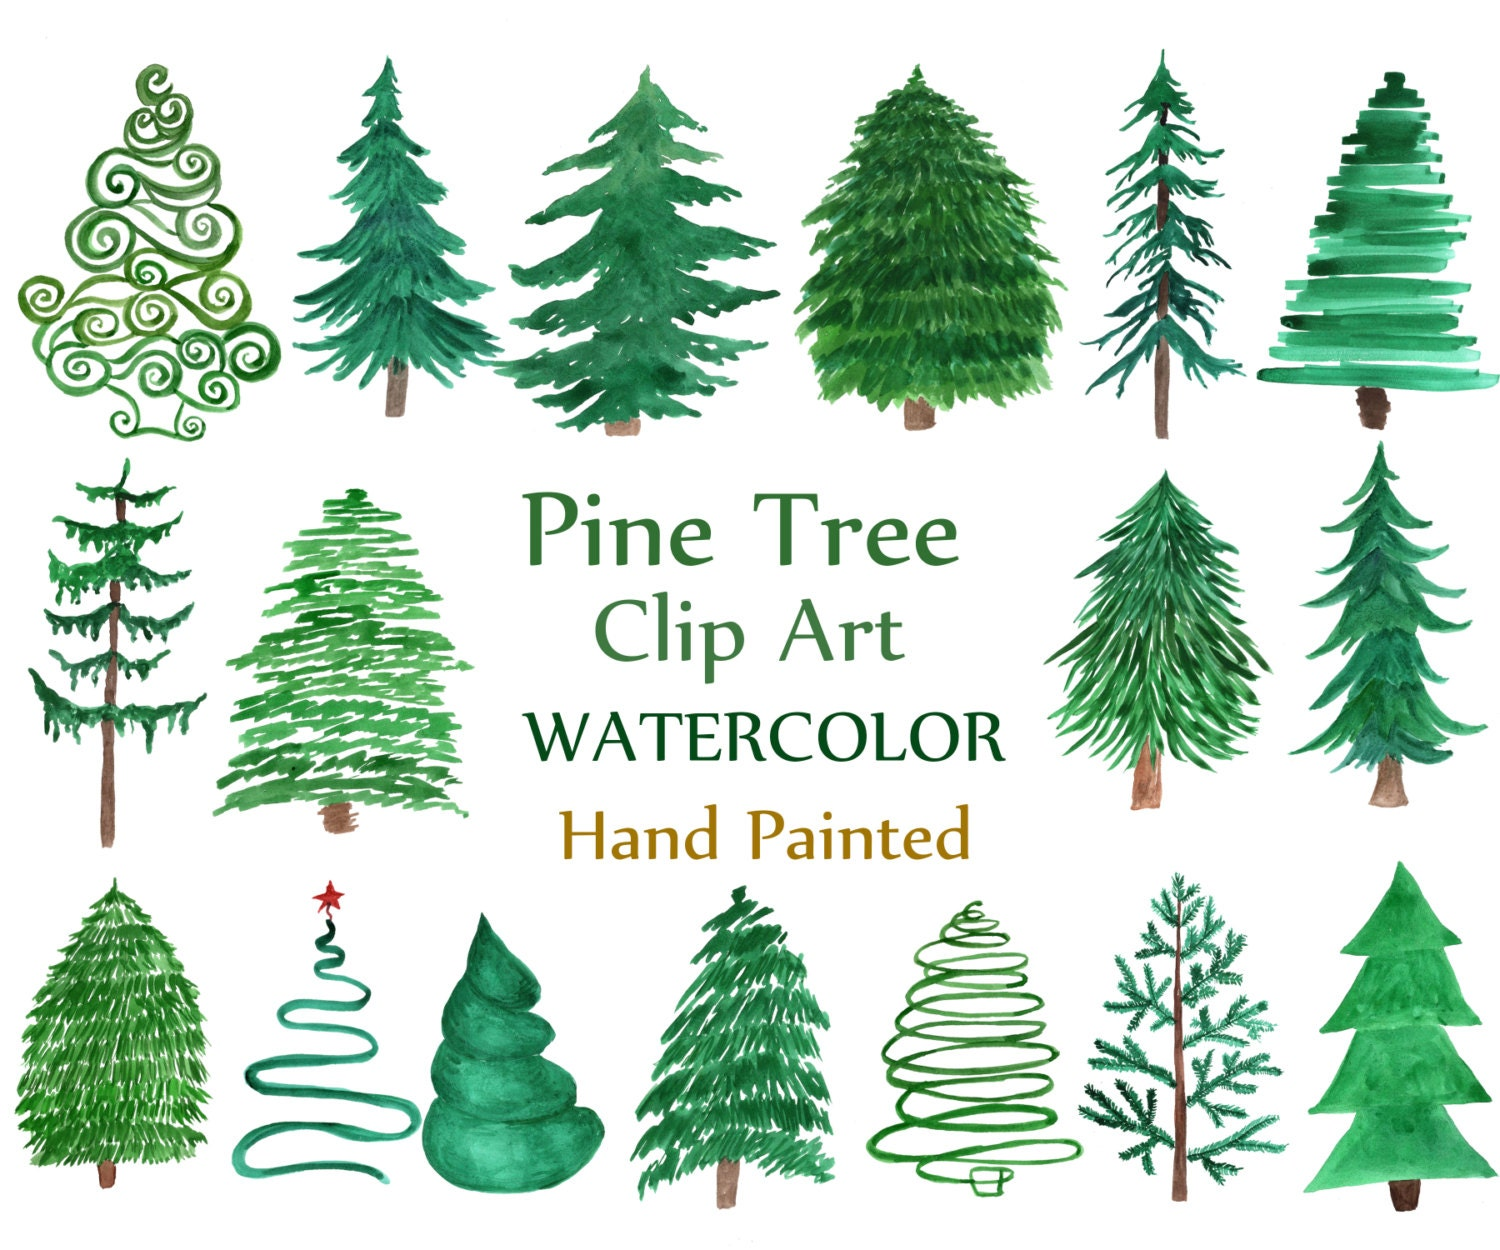 Wedding Tree Watercolor Clipart: Watercolor Pine Trees Clipart: CHRISTMAS TREE